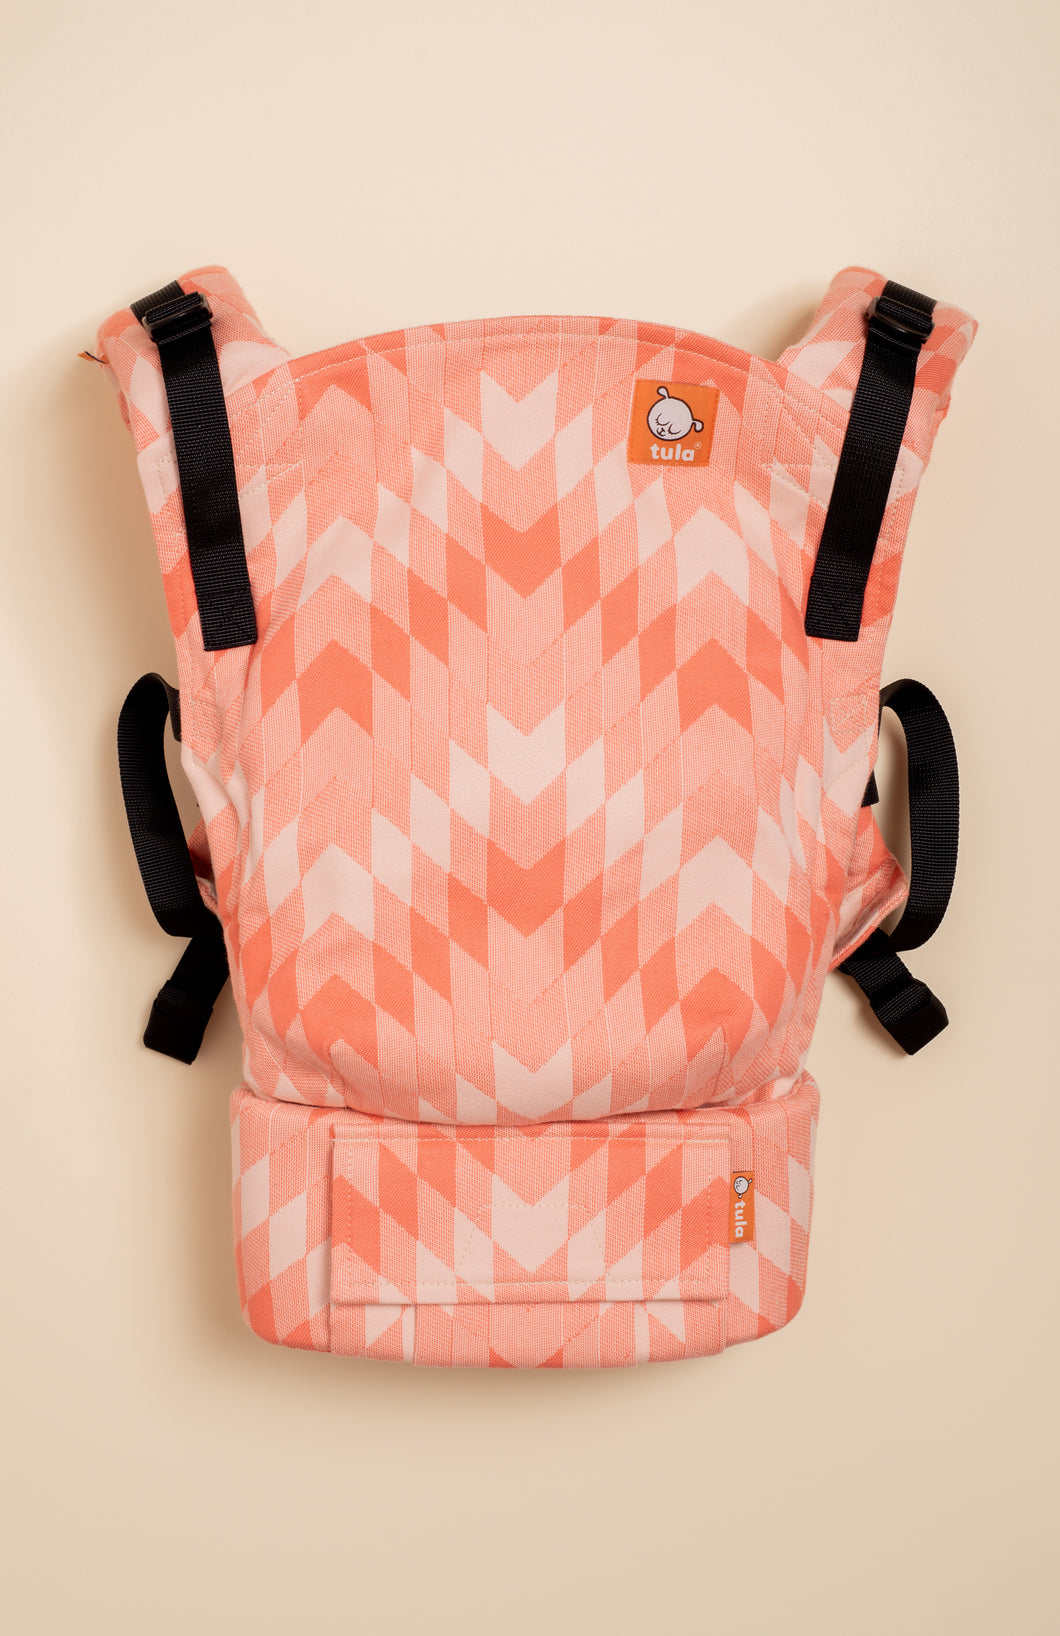 Woven Wings Pepper Potts - Tula Signature Baby Carrier